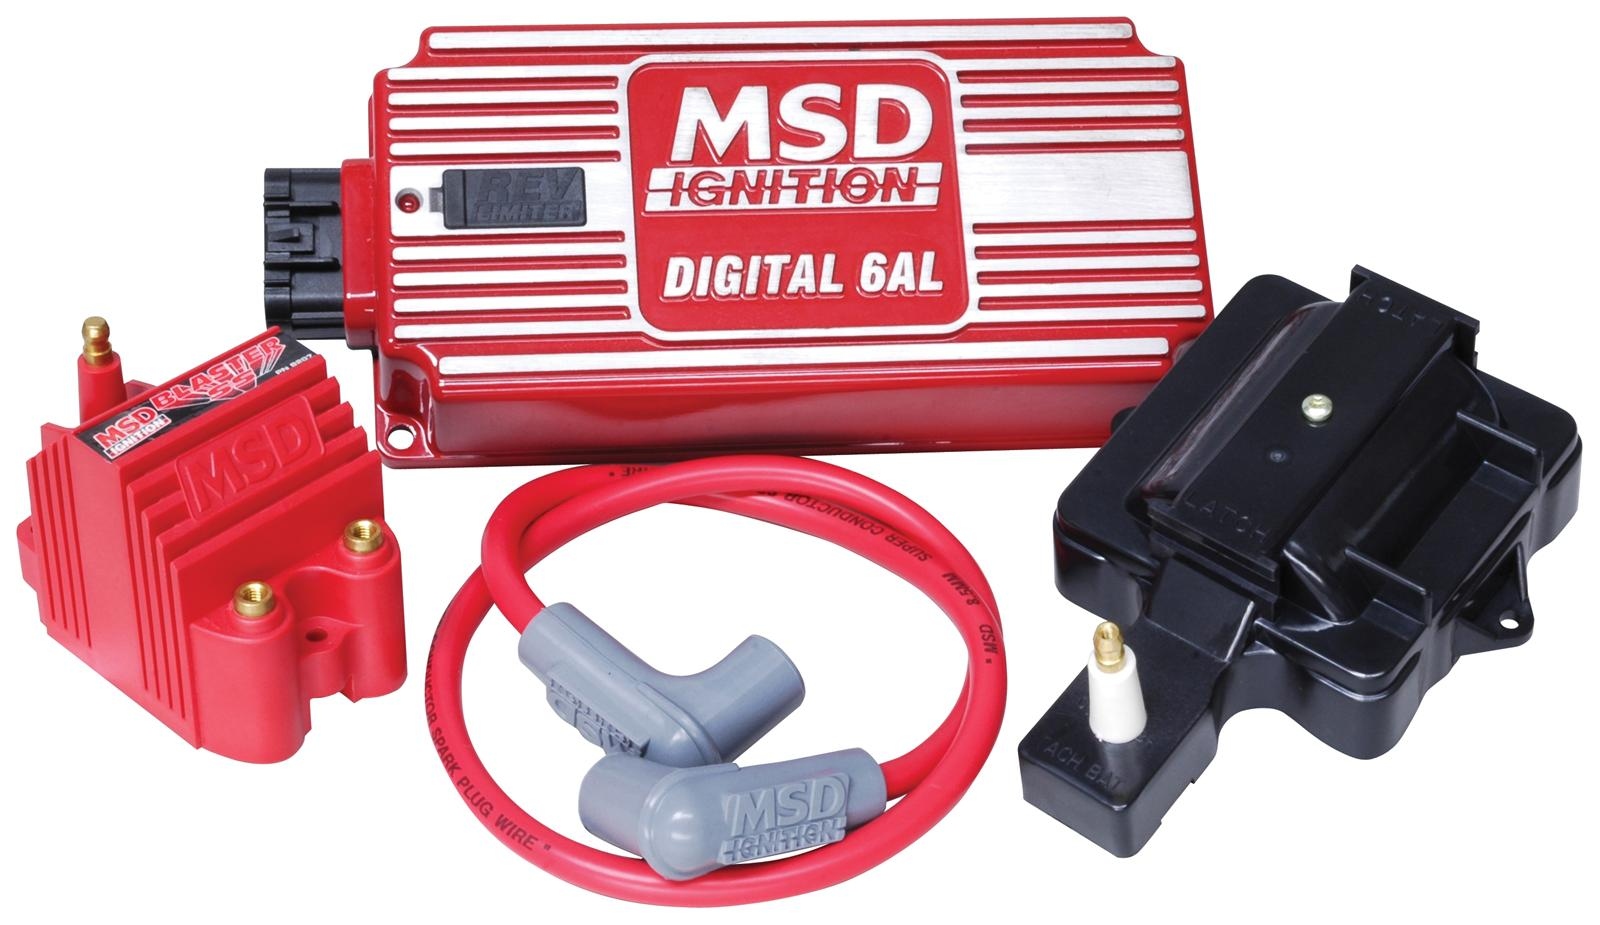 hight resolution of msd super hei kits 85001 free shipping on orders over 99 at rh summitracing com msd 6al box wiring diagram msd 6al 6420 wiring diagram